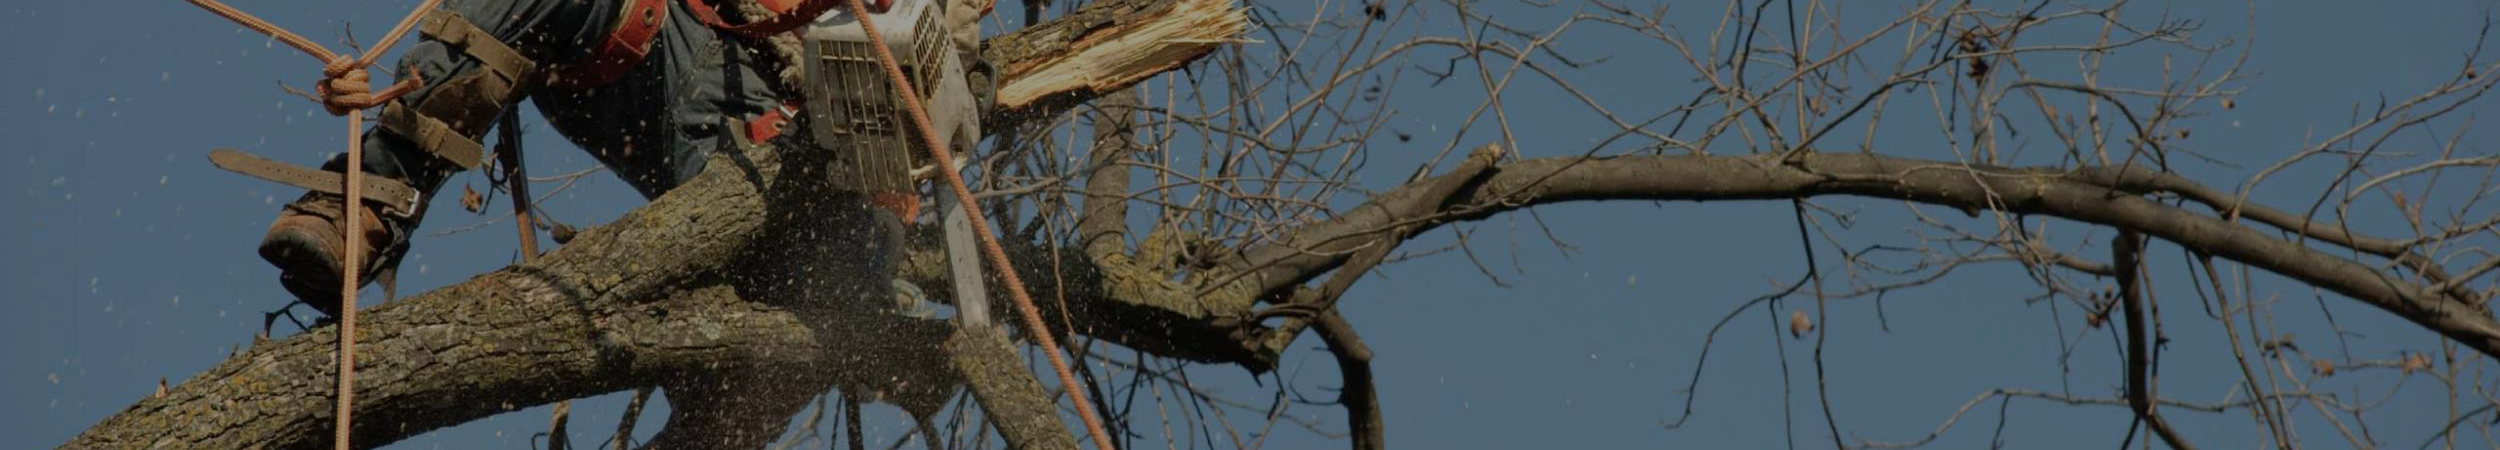 Picking the Right Tree Removal Service Can Save You Money and Headaches